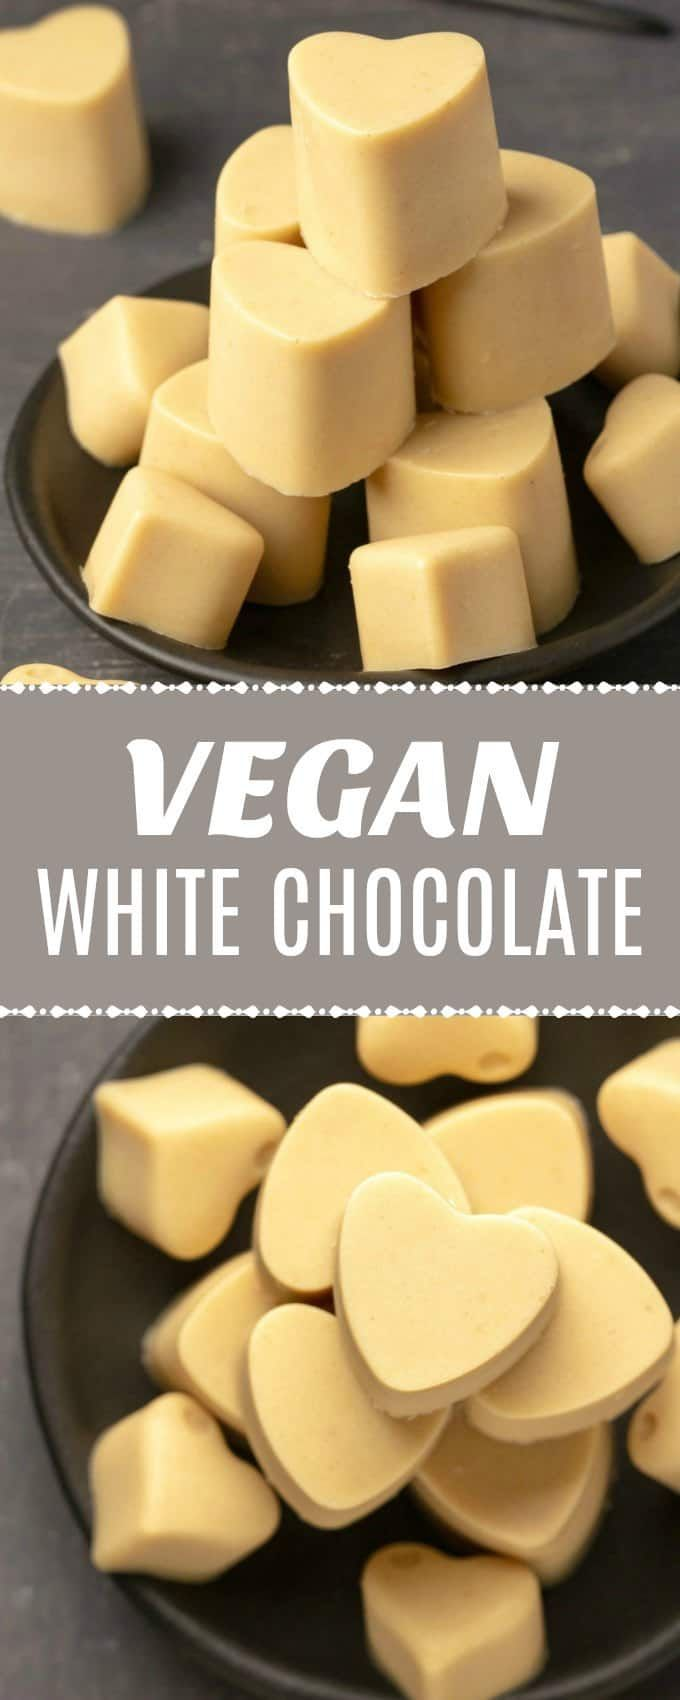 This Vegan White Chocolate Is So Smooth And Creamy You Ll Totally Fall In Love With It With Only 6 Vegan White Chocolate Vegan Chocolate Recipes Vegan Candies